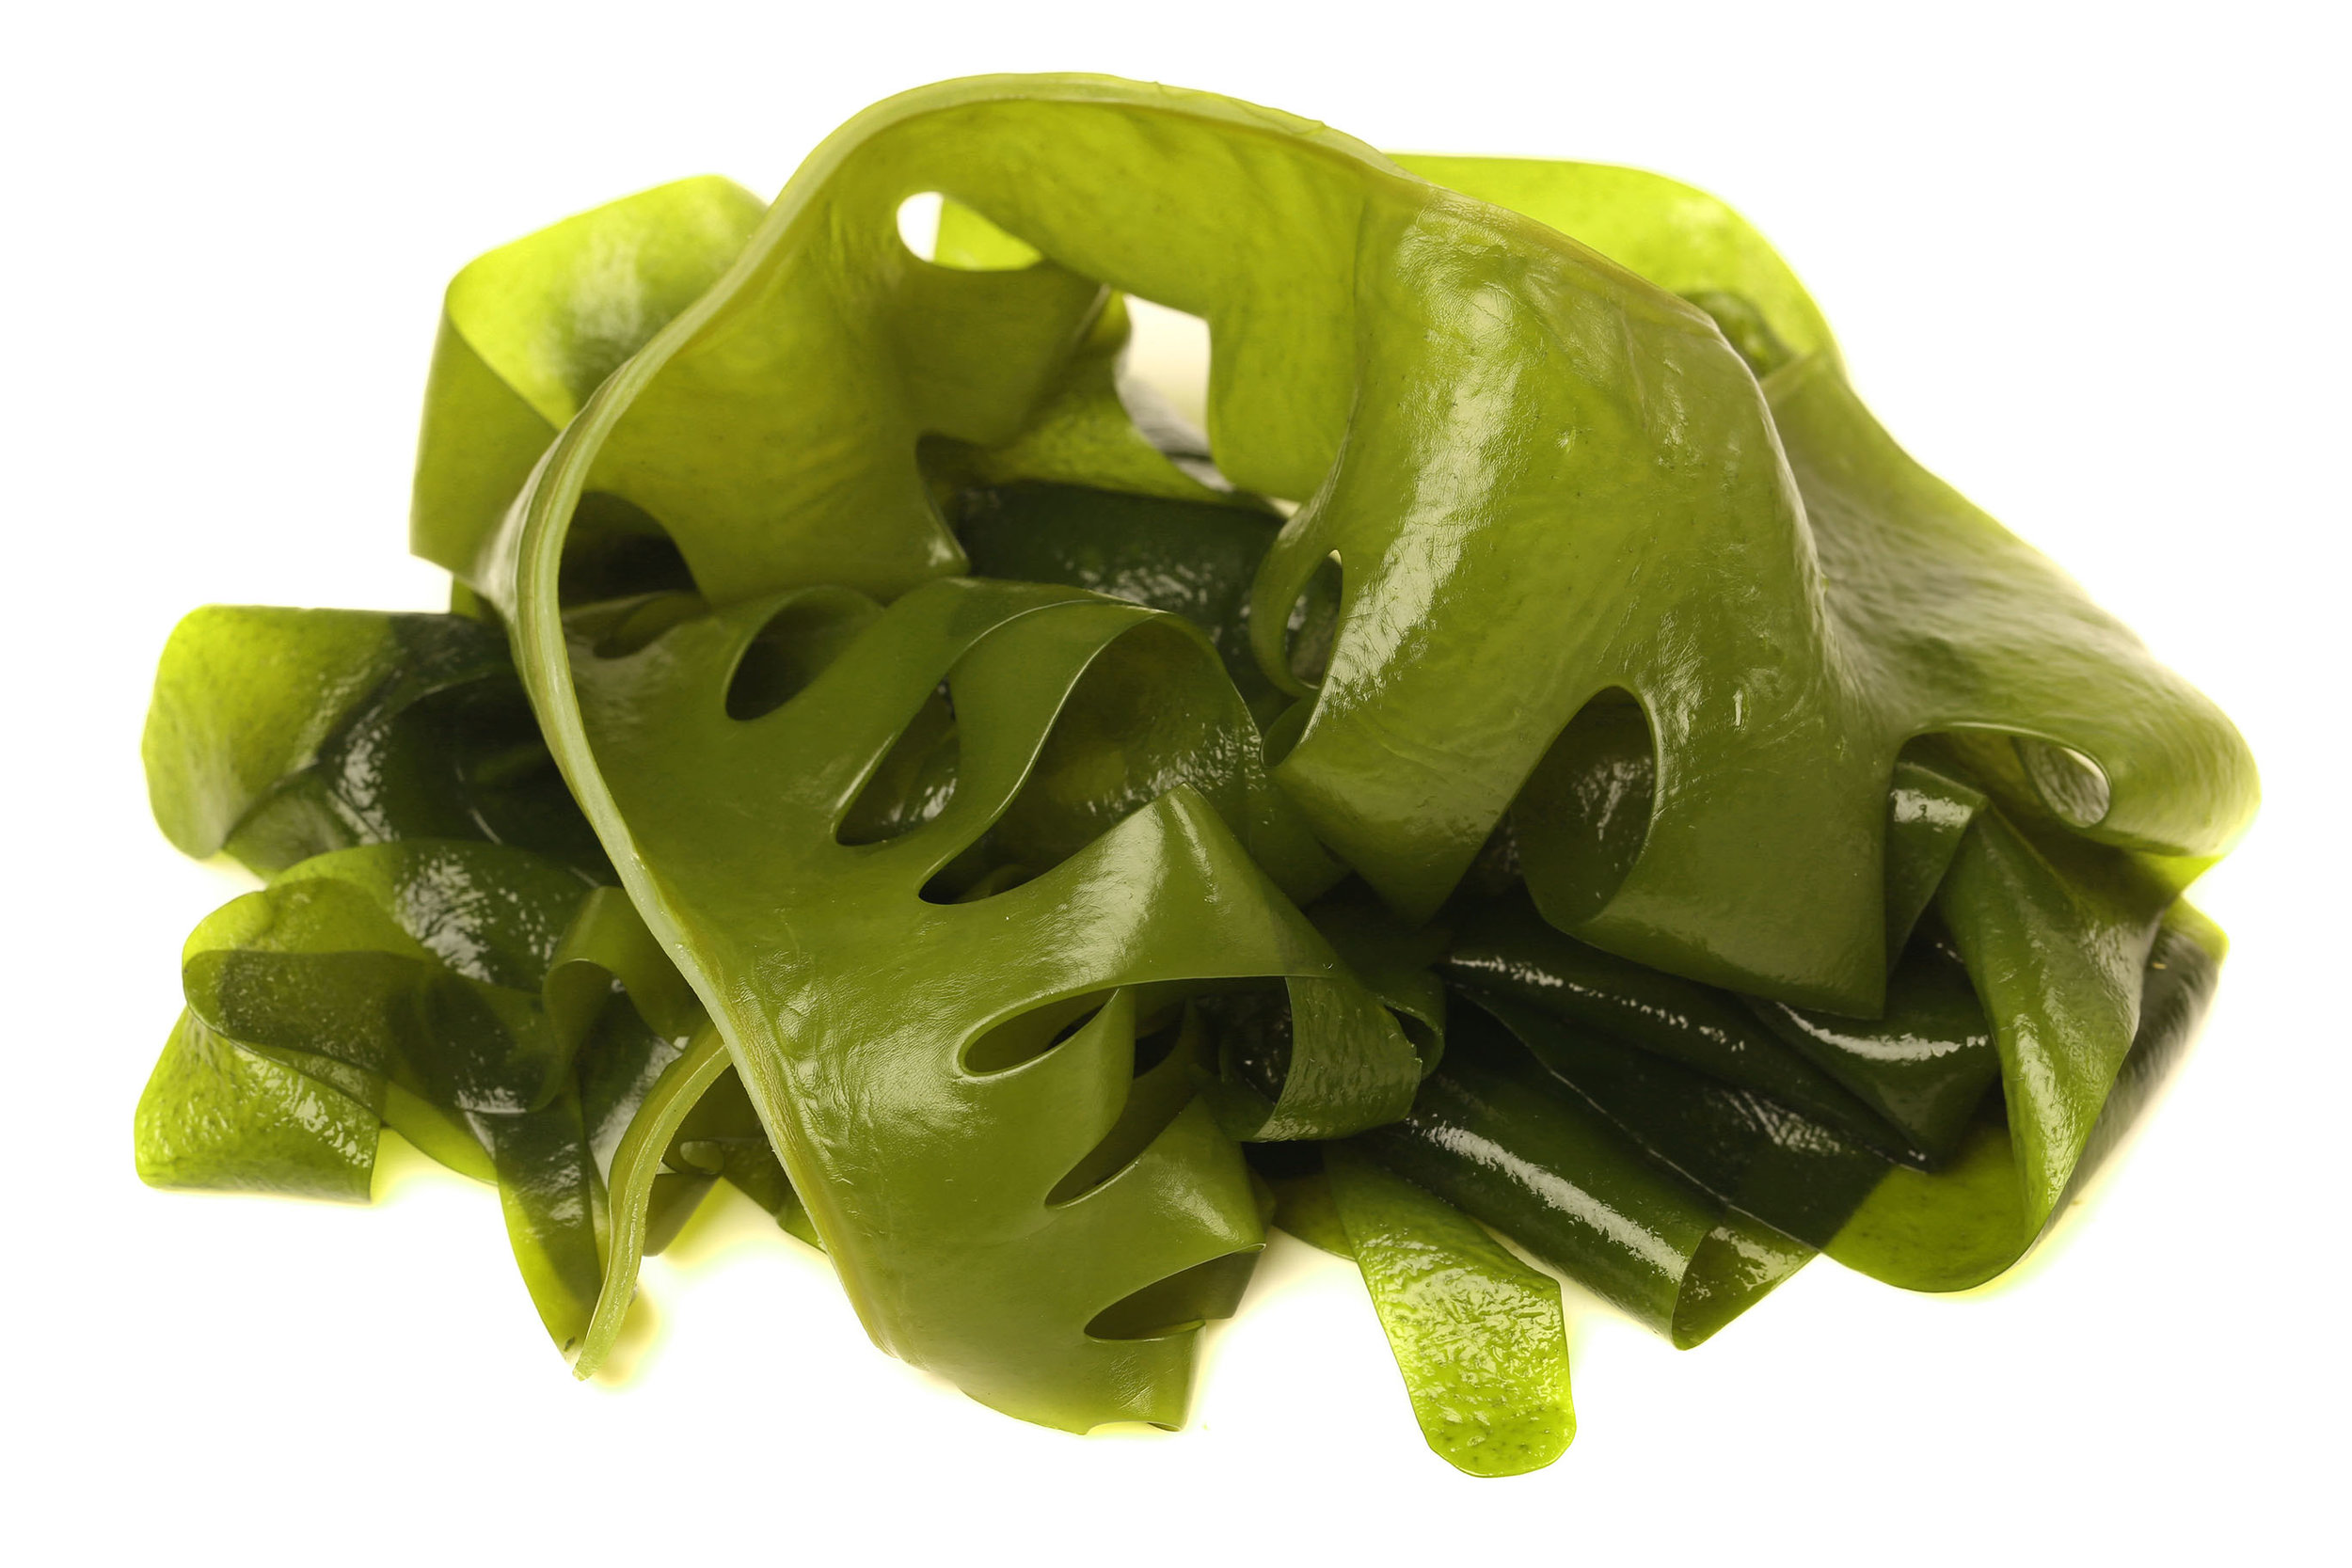 Kelp (or large Seaweed/Algae) are the source of Alginate, the biopolymer used by AlgiKnit to create their Bioyarn and bio-based textile.